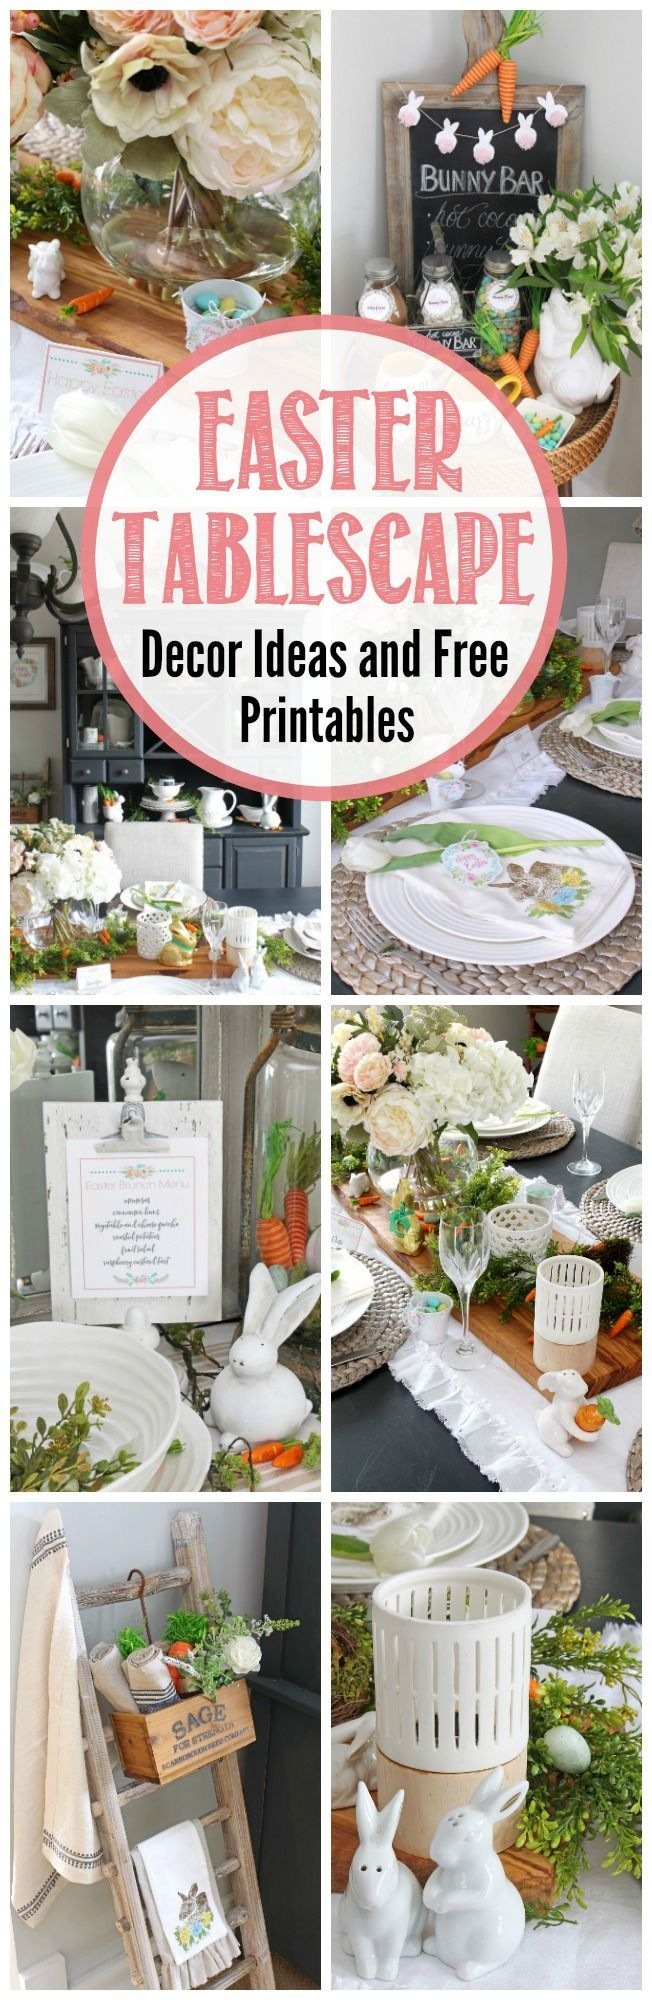 Beautiful ideas to decorate your dining room for Easter.  Free printable menus, placecards, and decor items that would be perfect for Easter brunch or Easter dinner.